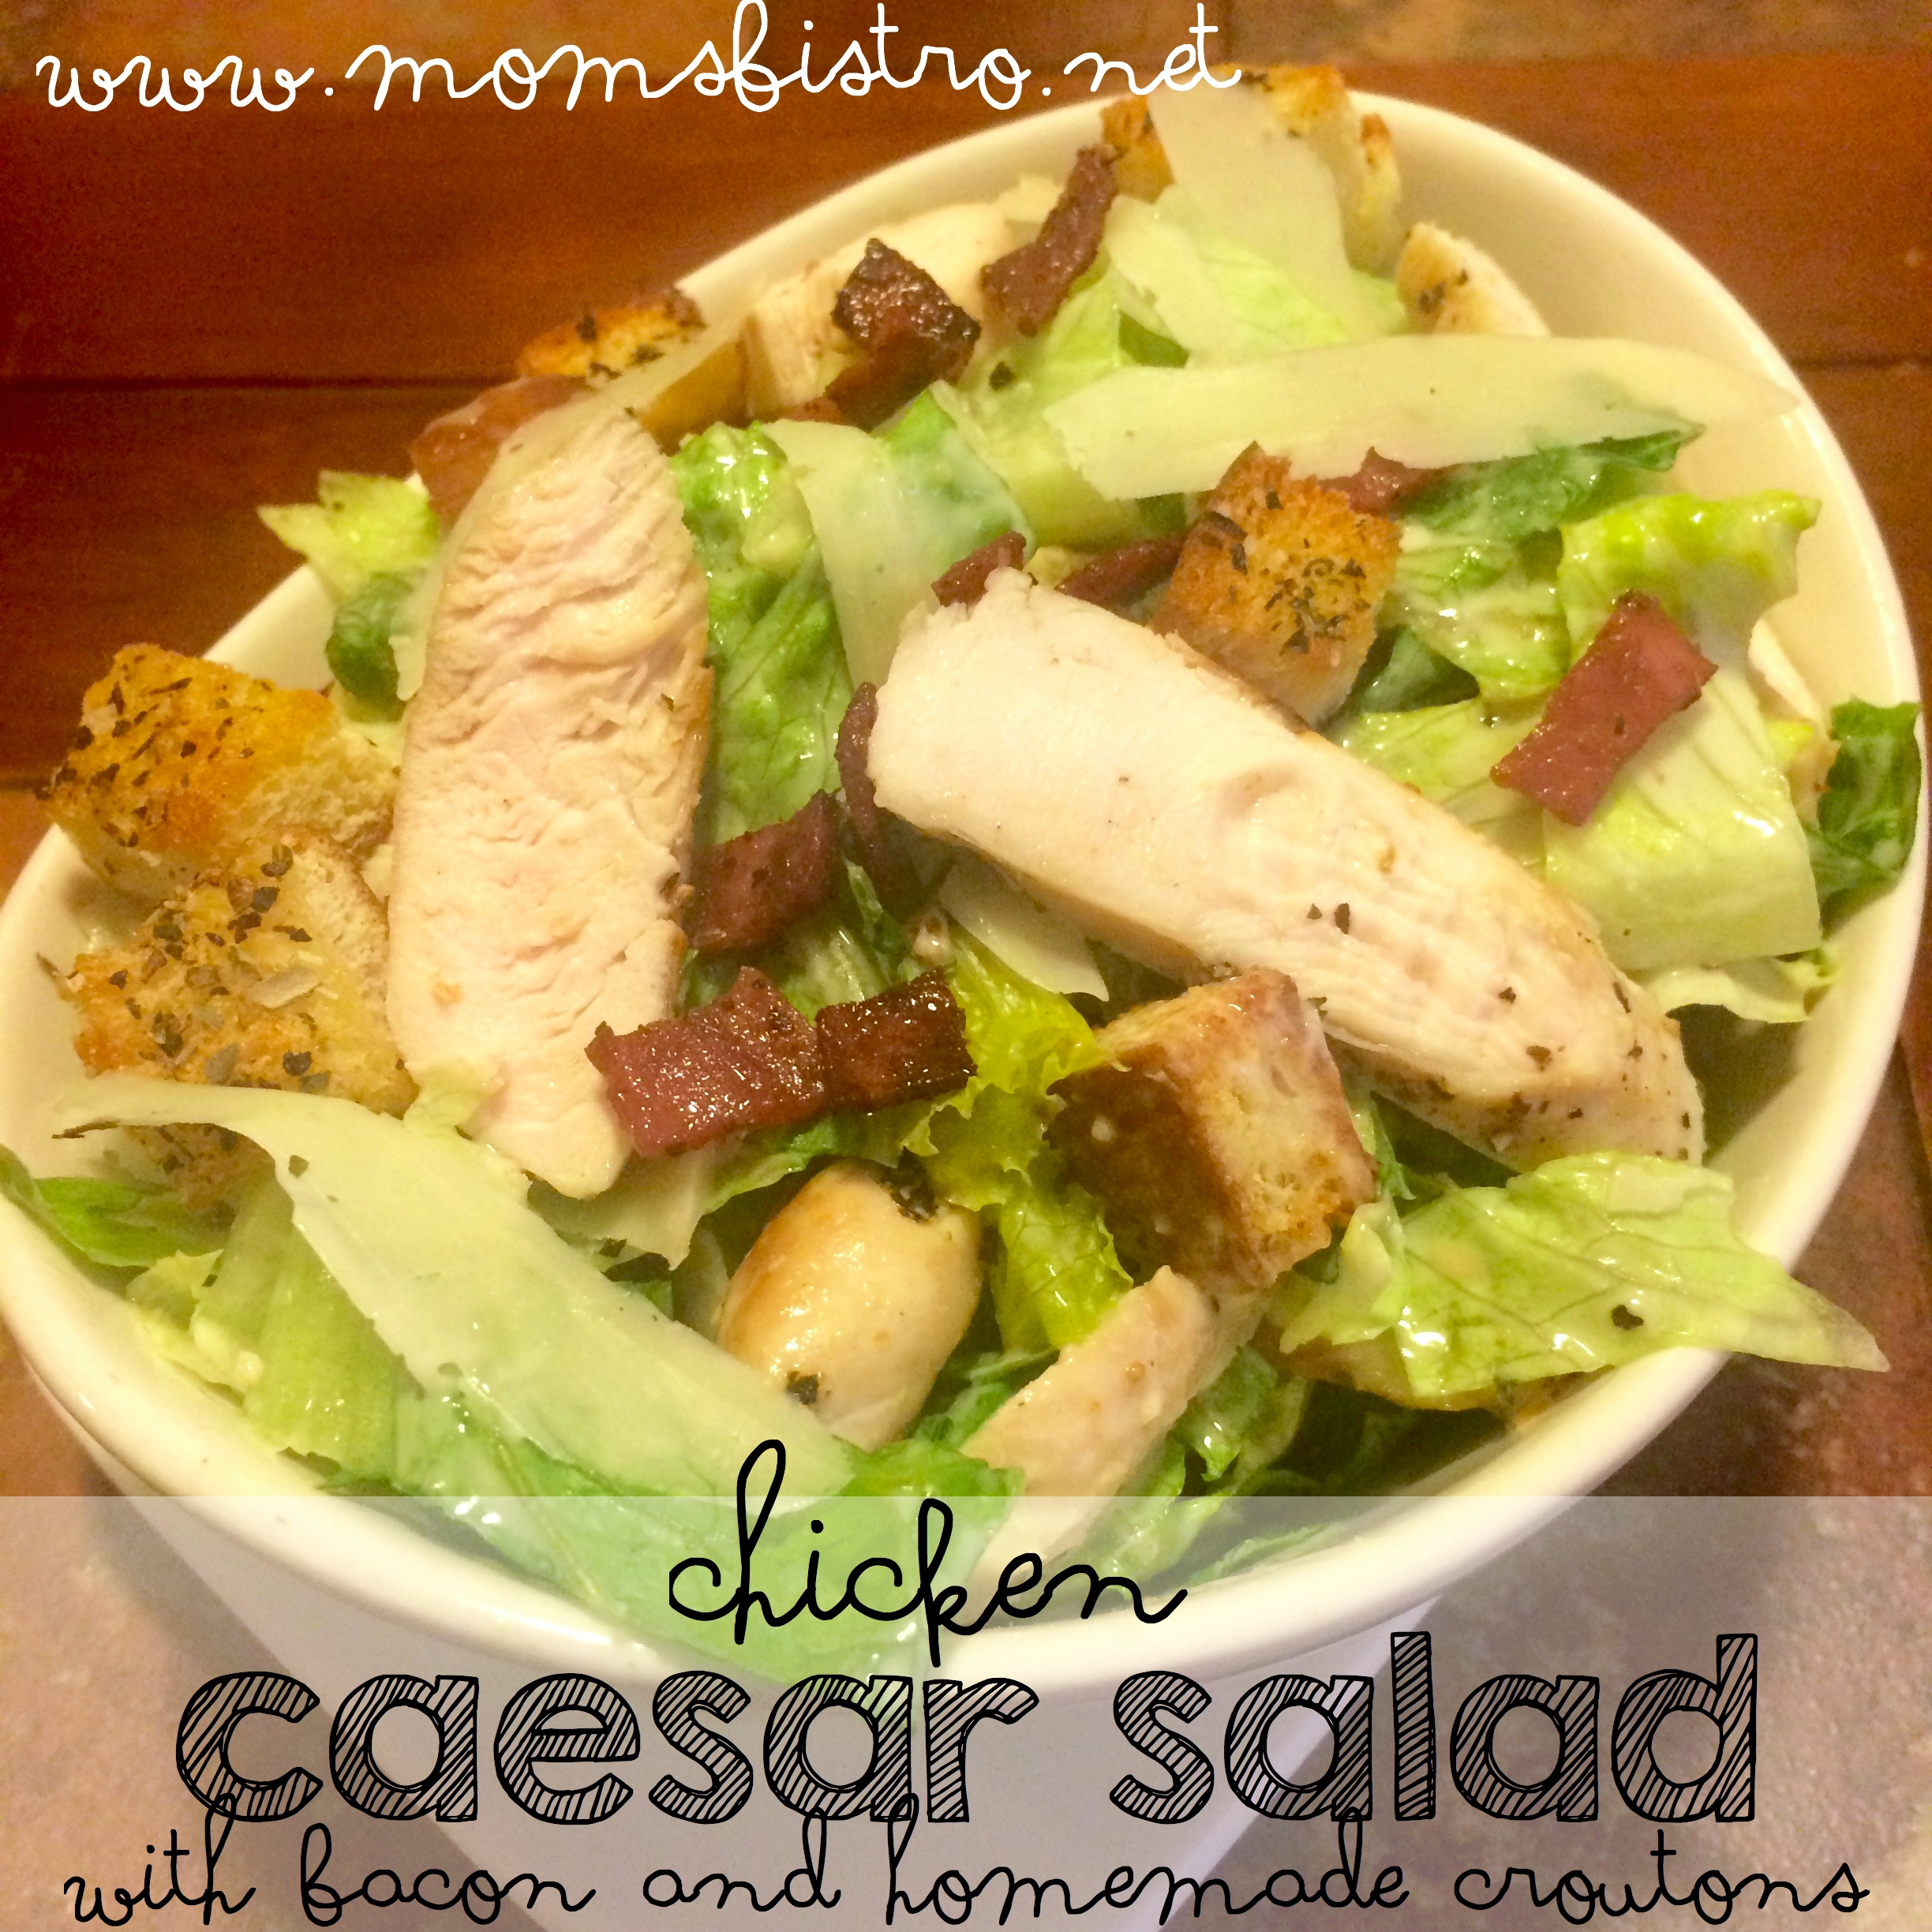 Caesar salad: recipe with chicken and croutons